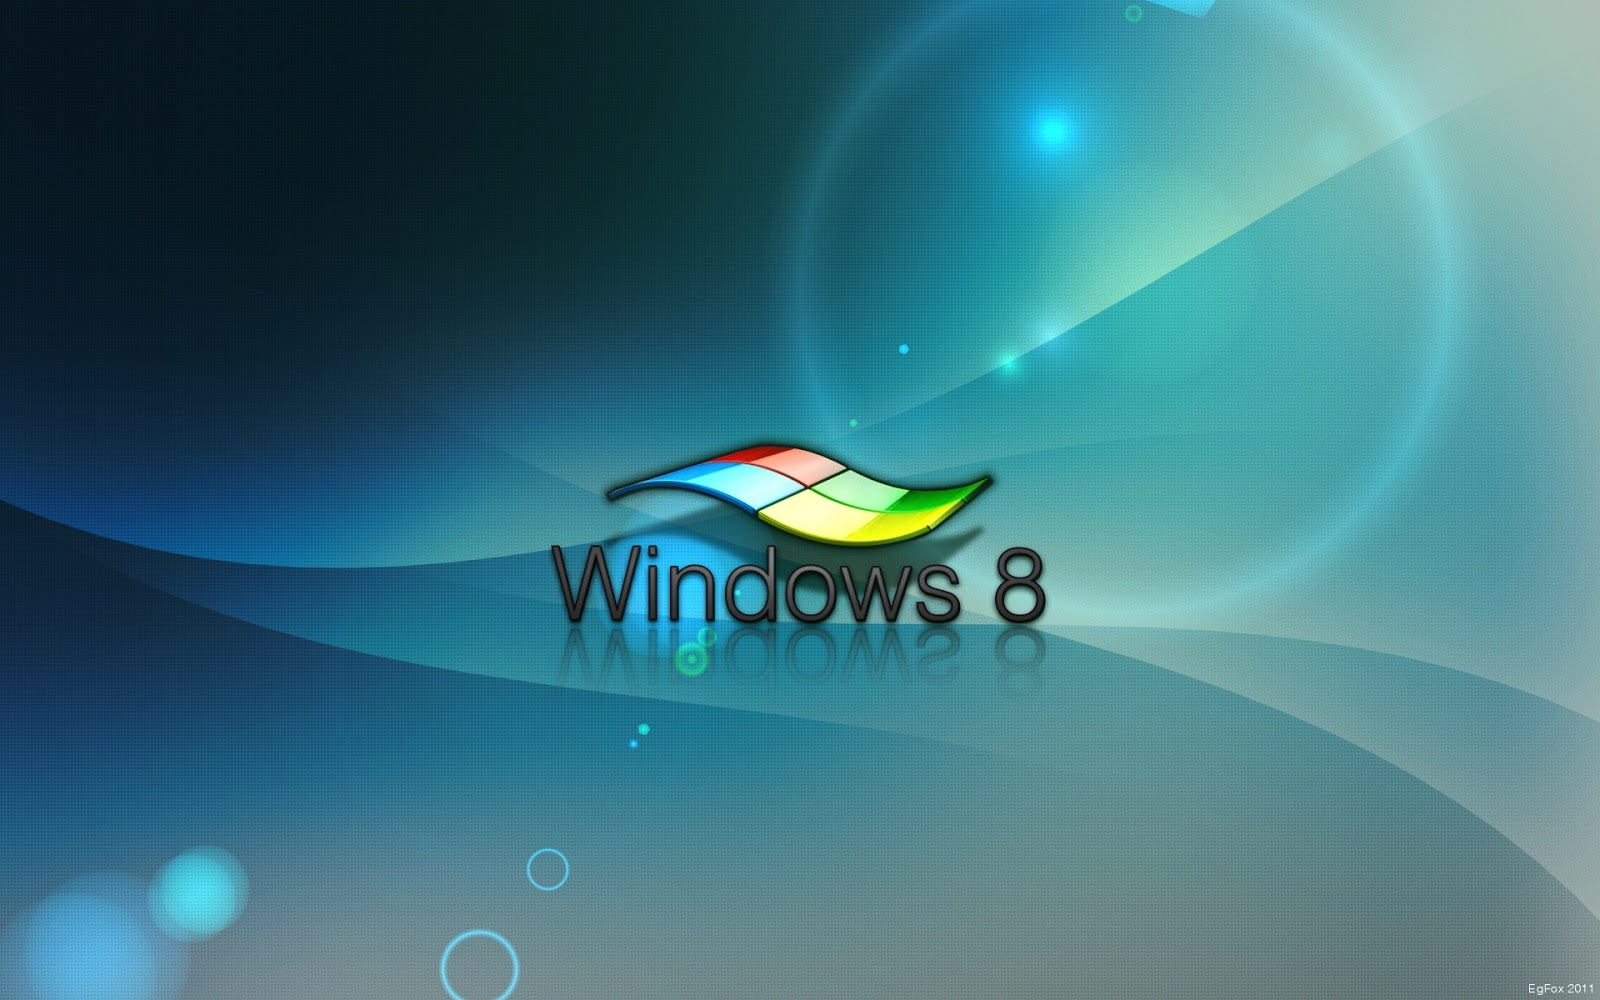 Windows 8 papel de parede